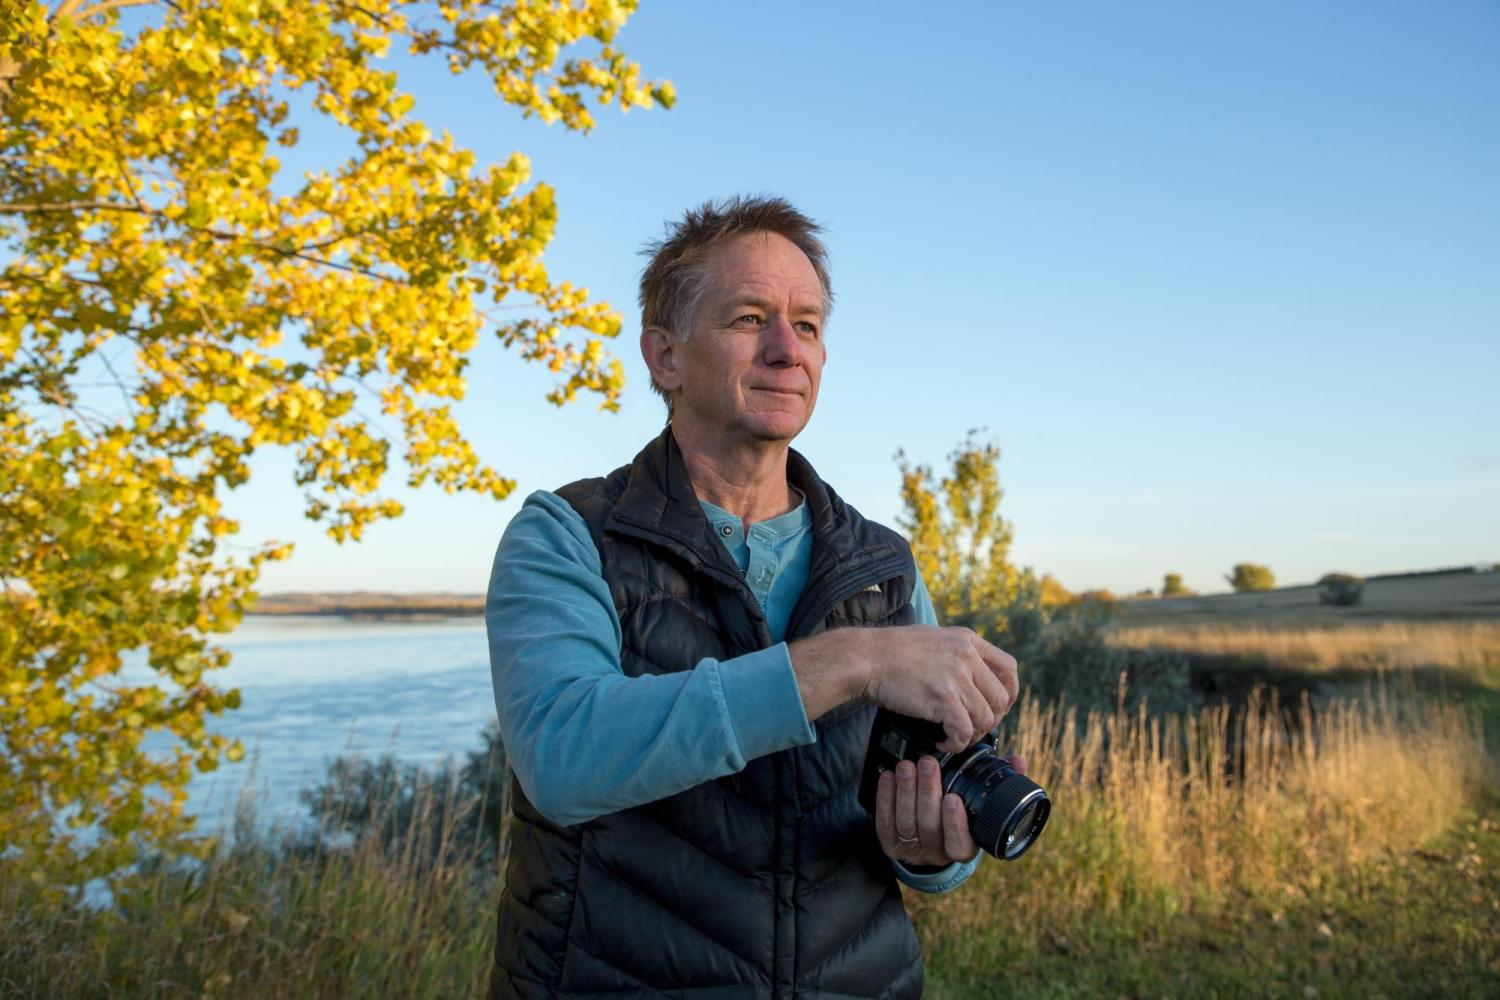 Kent with his camera by a lake with fall trees